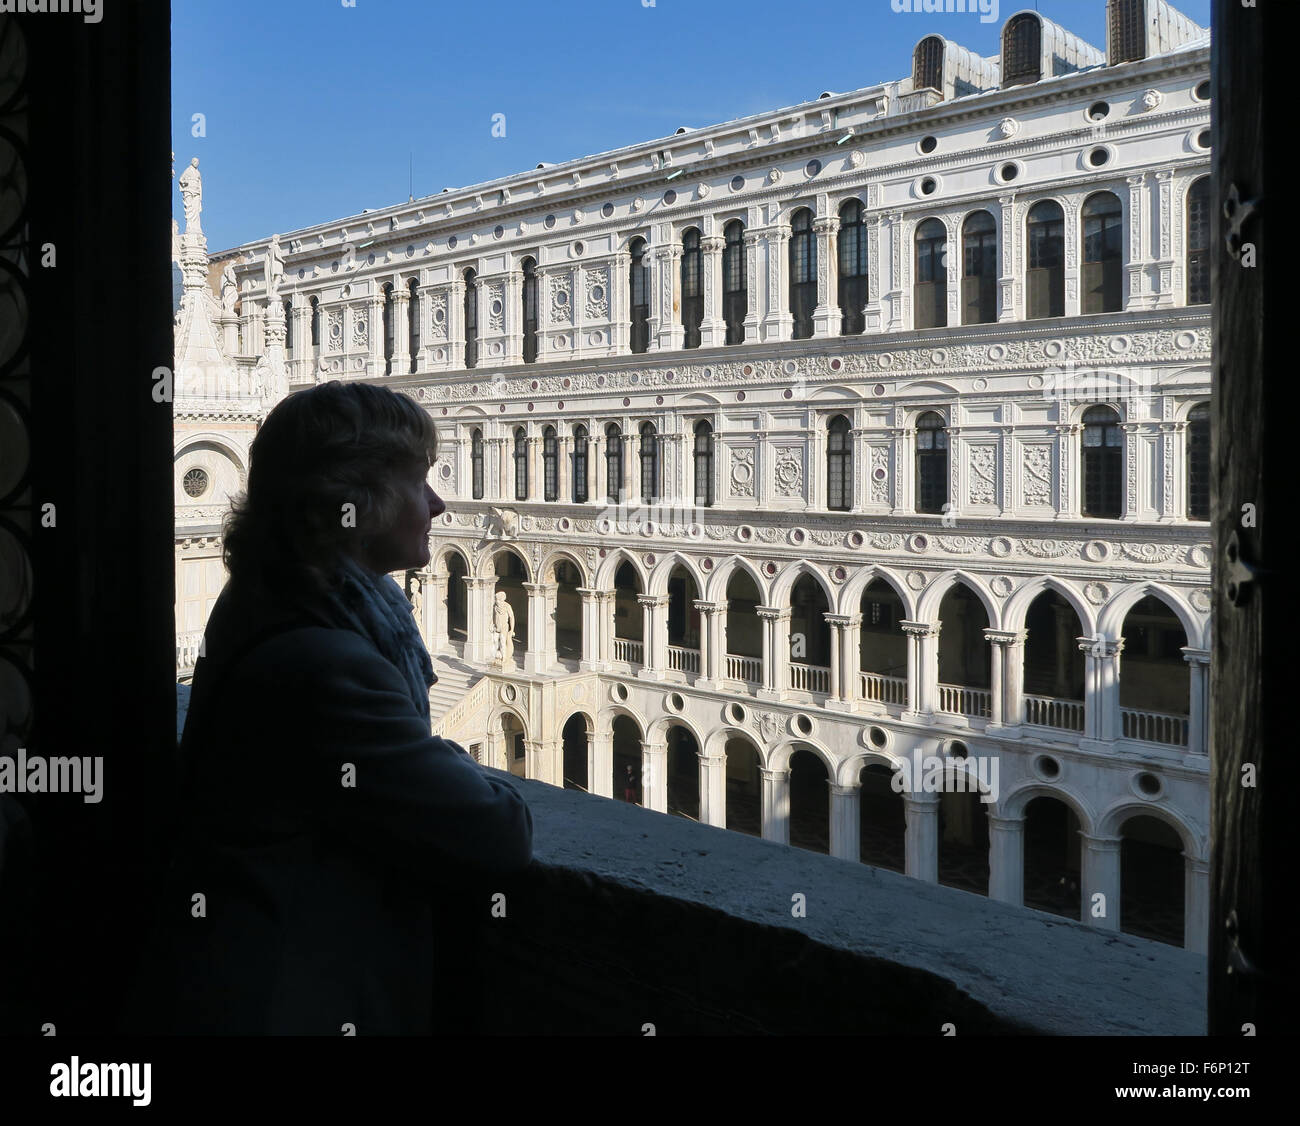 Tourist viewing the courtyard facade at the Doge's Palace at St Marks Square, San Marco, Venice. - Stock Image